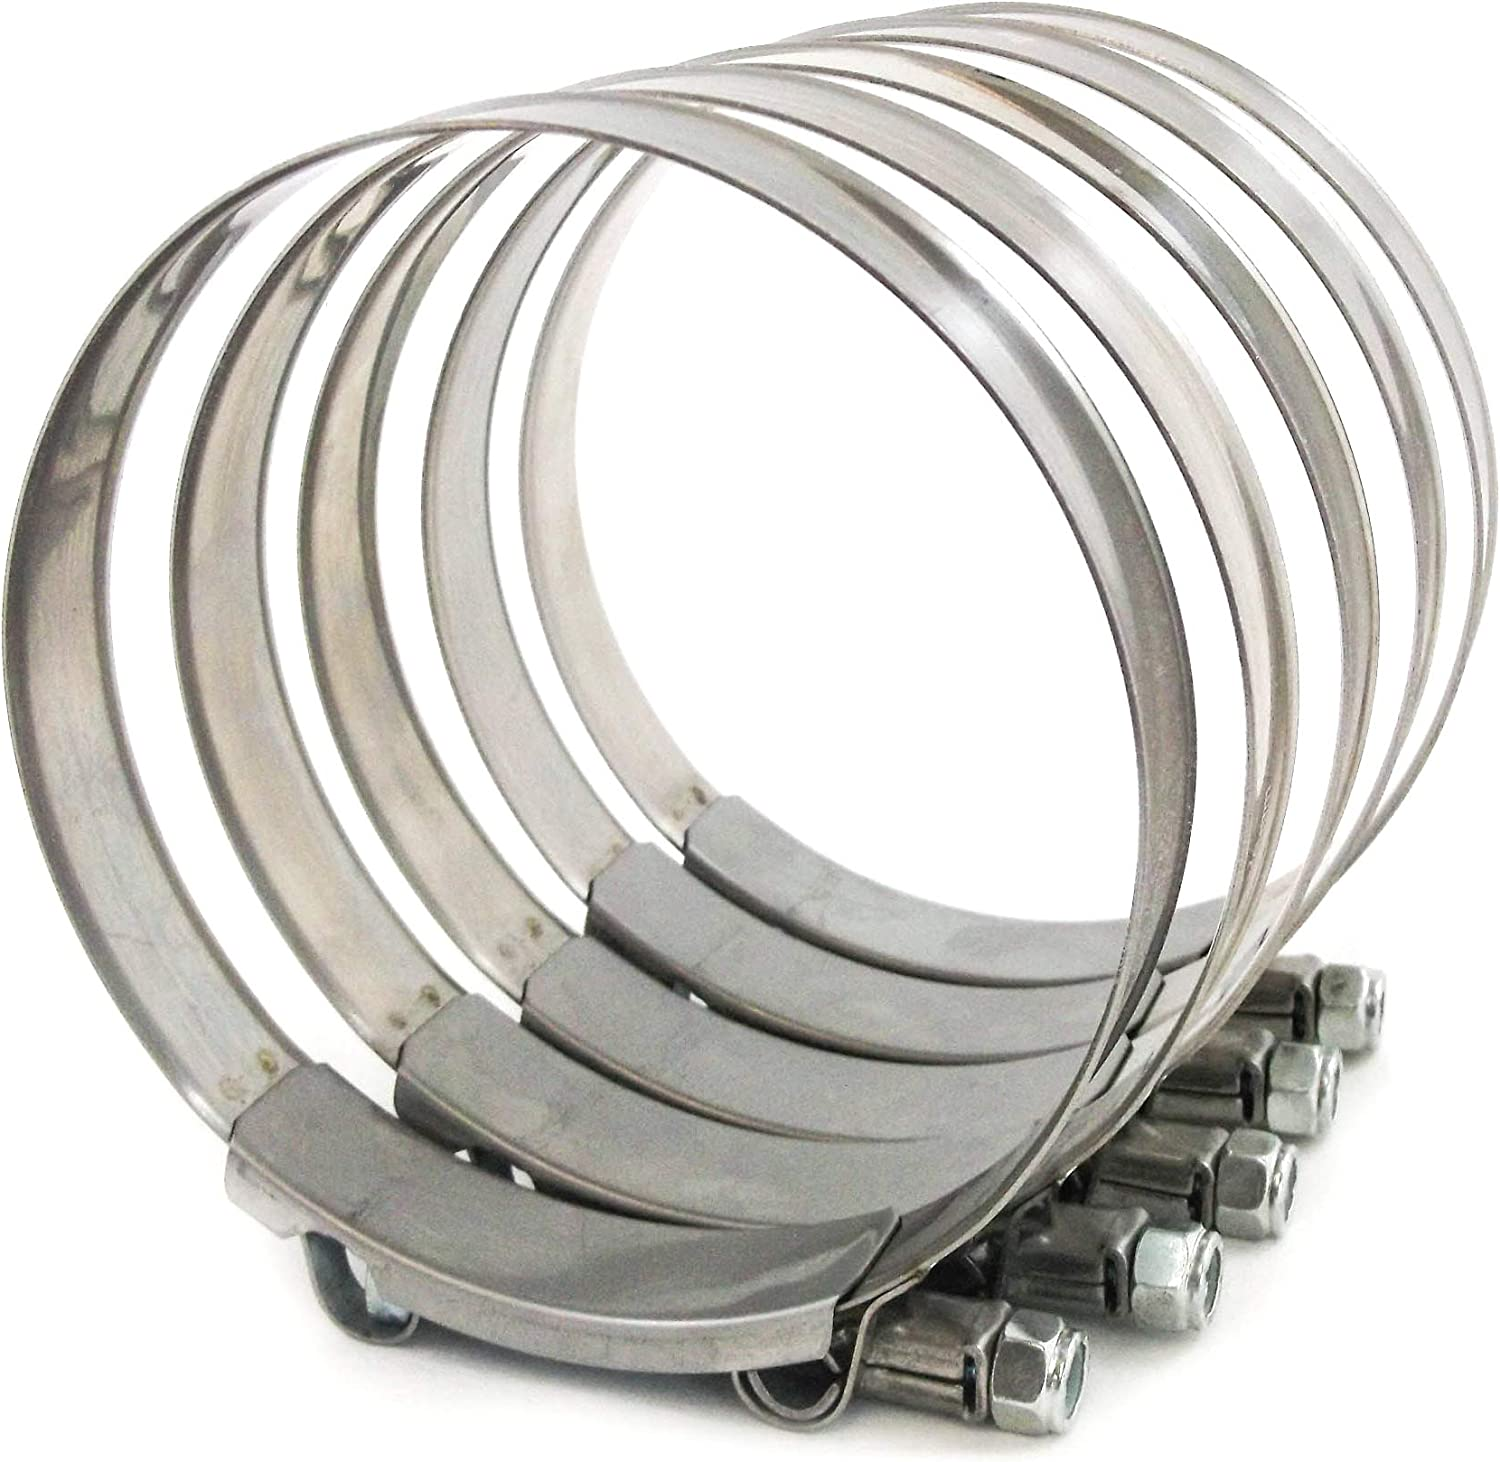 5x Premium 304 Stainless Steel T-Bolt Turbo Silicone Hose Clamp 4.5 Inches 110-118mm